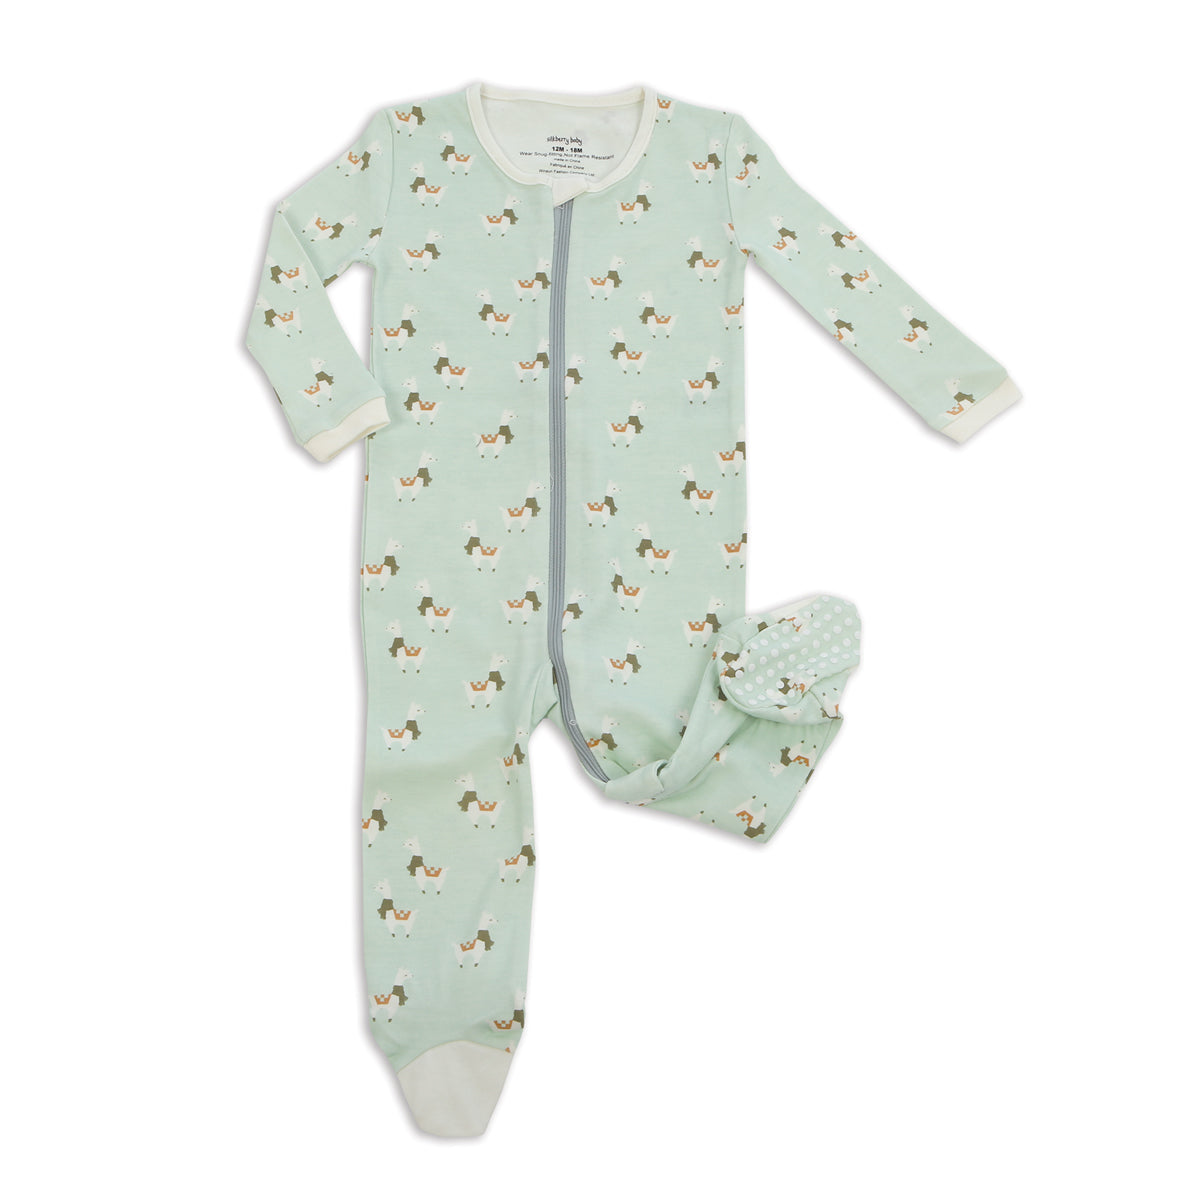 Organic Cotton Footies with Easy Dressing Zipper(Stardust Llama Print)